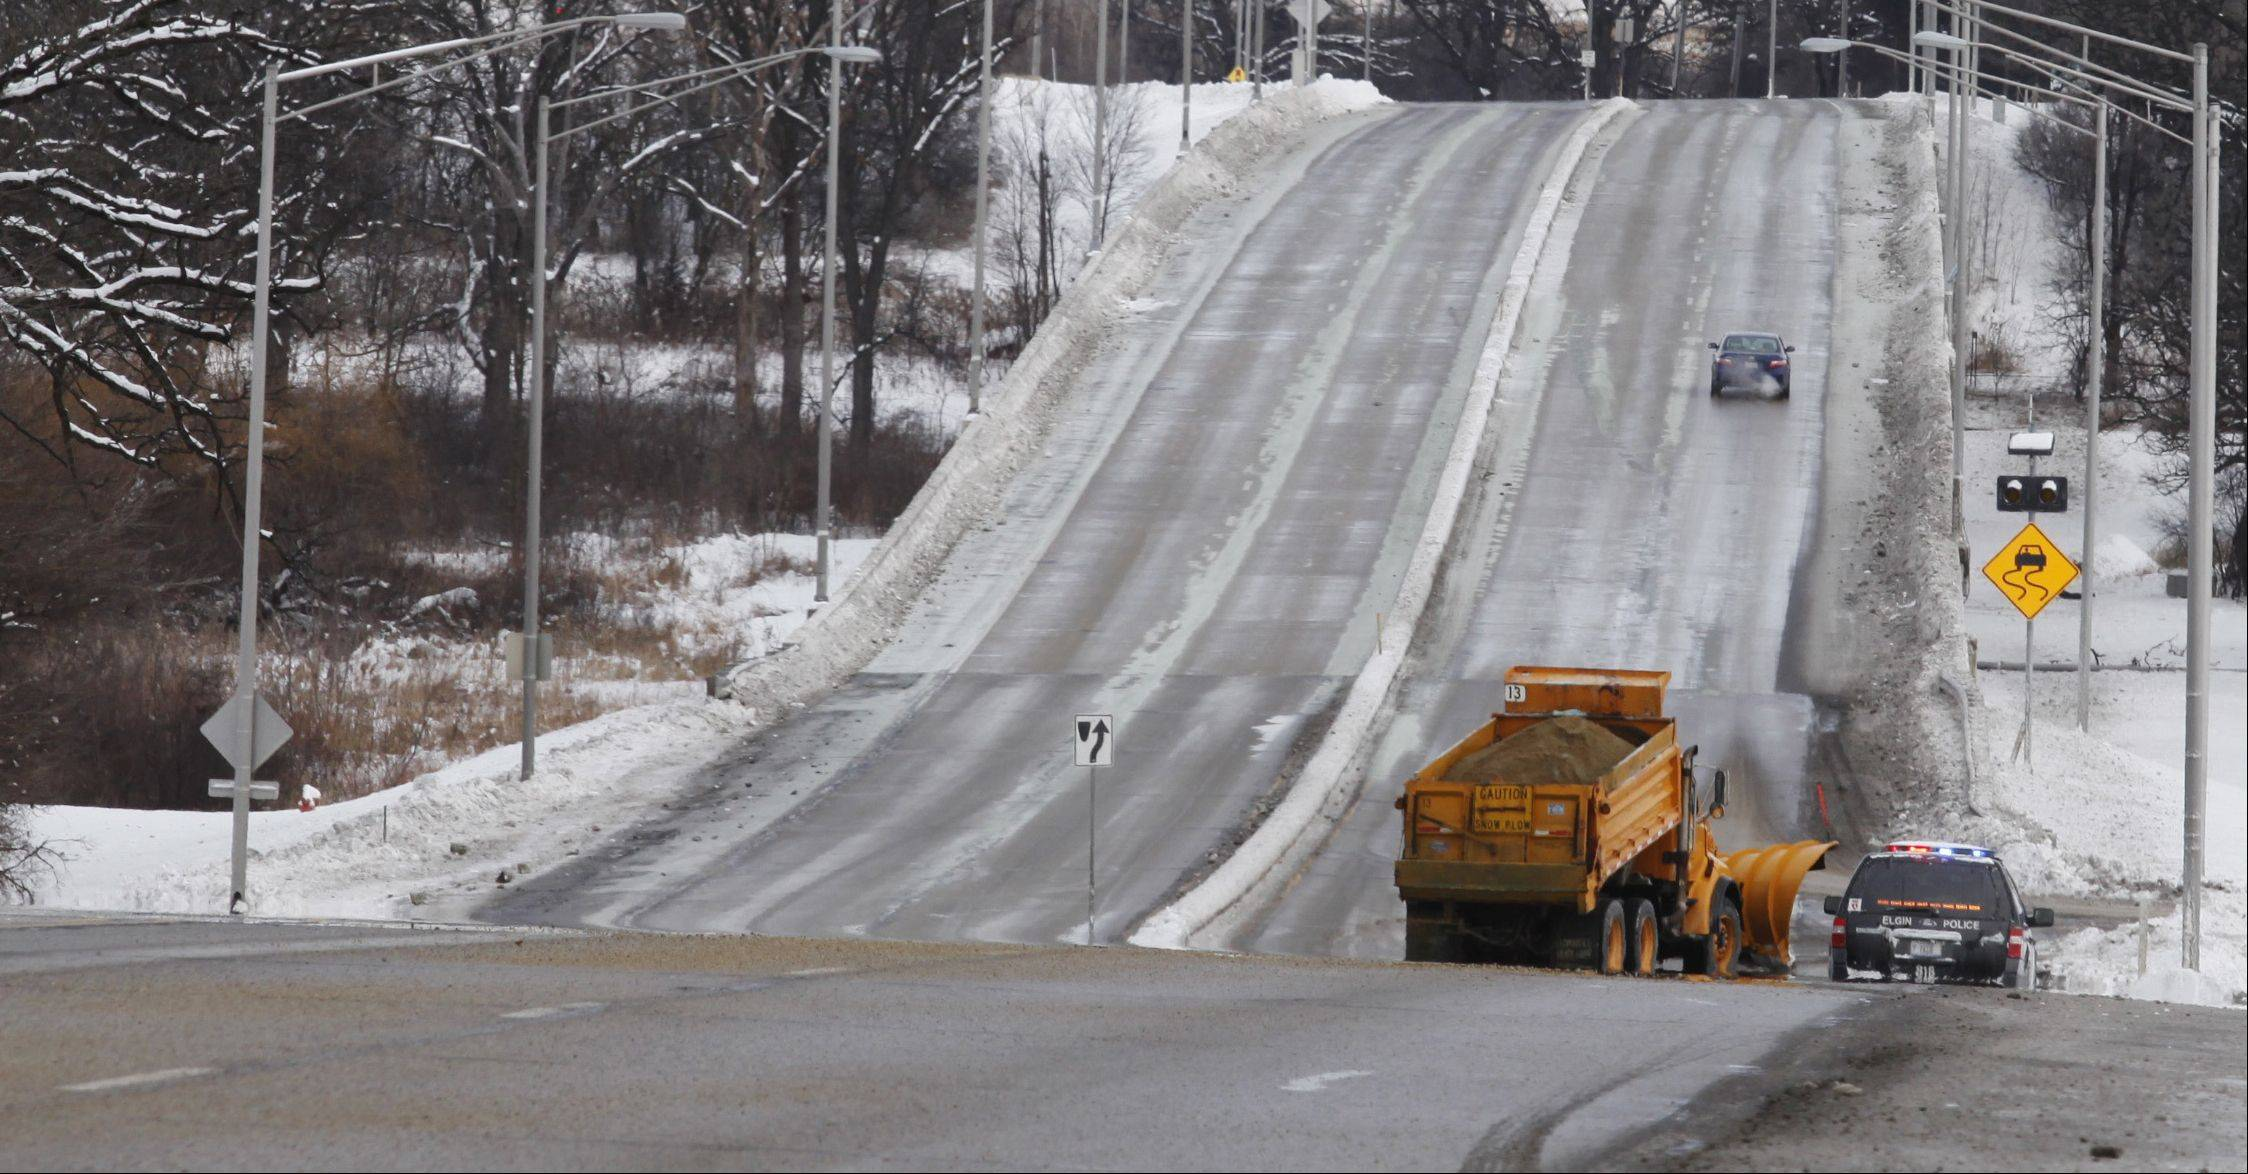 A snowplow helps clear up a problem spot on the northbound side of Randall Road north of Royal Boulevard Tuesday morning in Elgin, as icy conditions forced the closure of Randall Road from Royal to Big Timber Road.